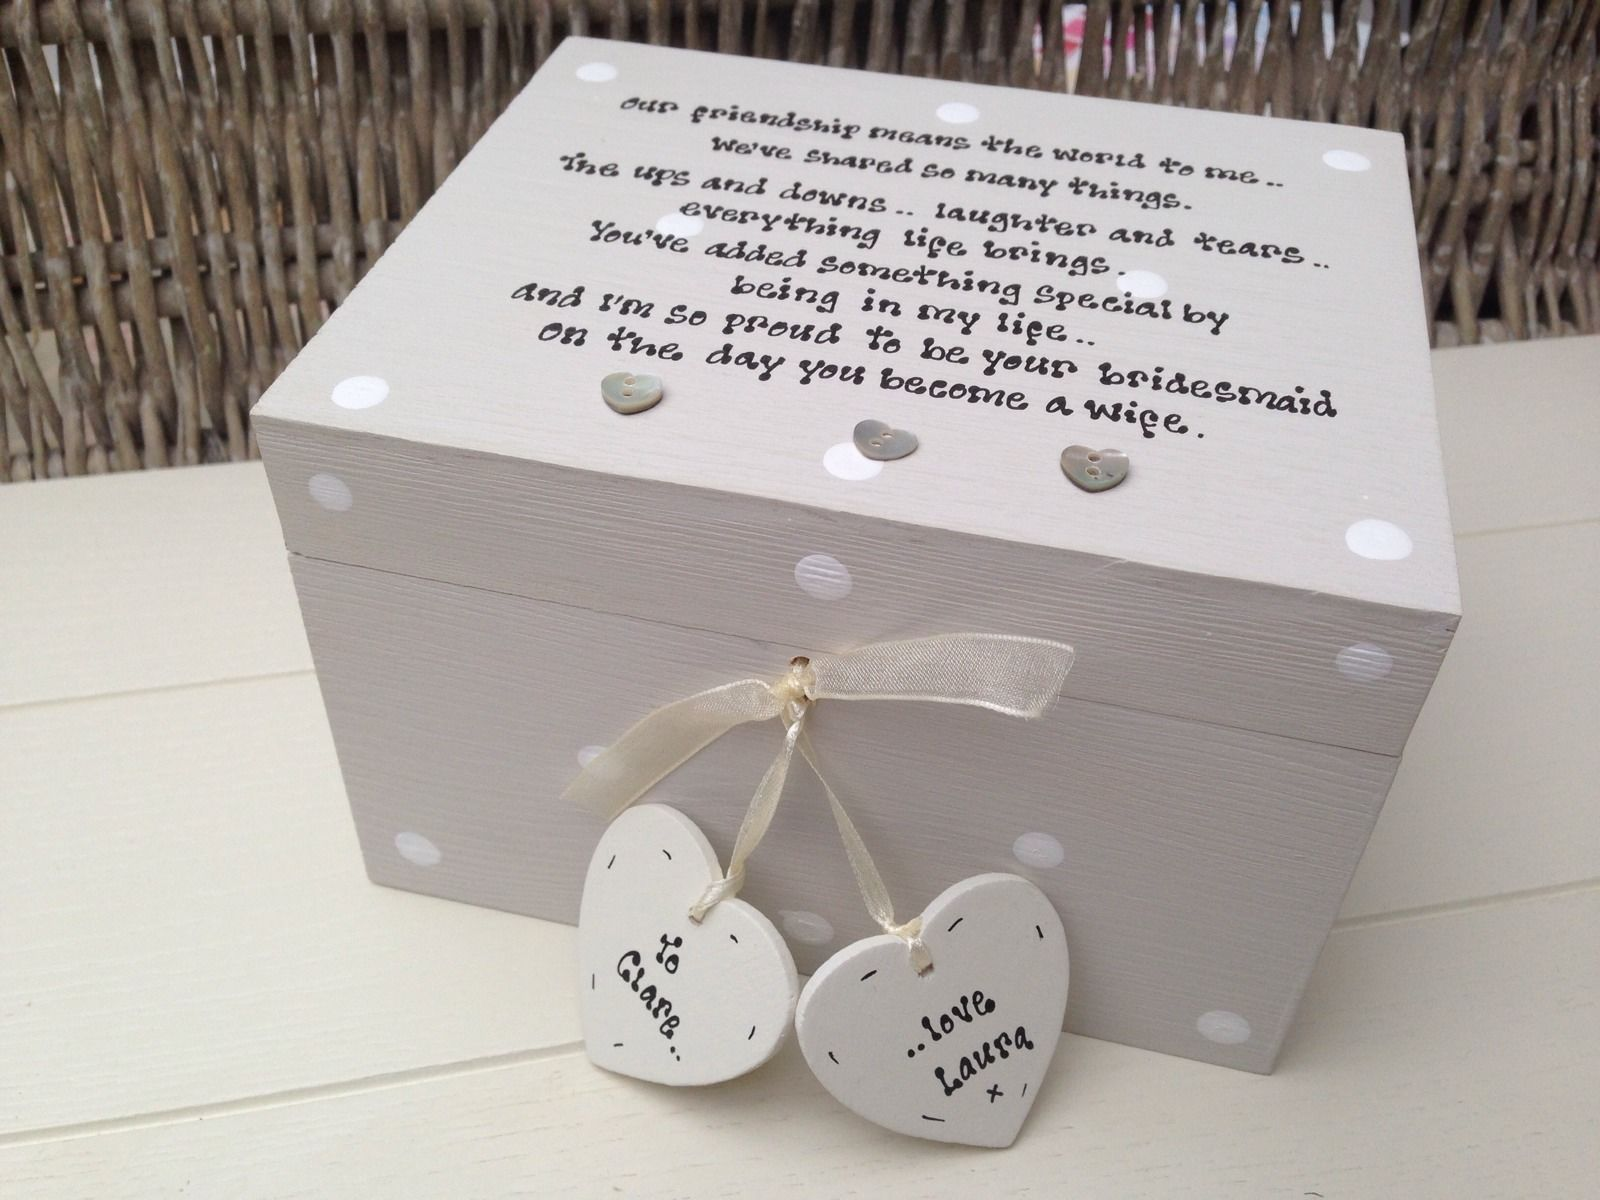 Personalised Wedding Gift Bride : ... Personalised Chic Gift For Bride From Bridesmaid Wedding Trinket Gift